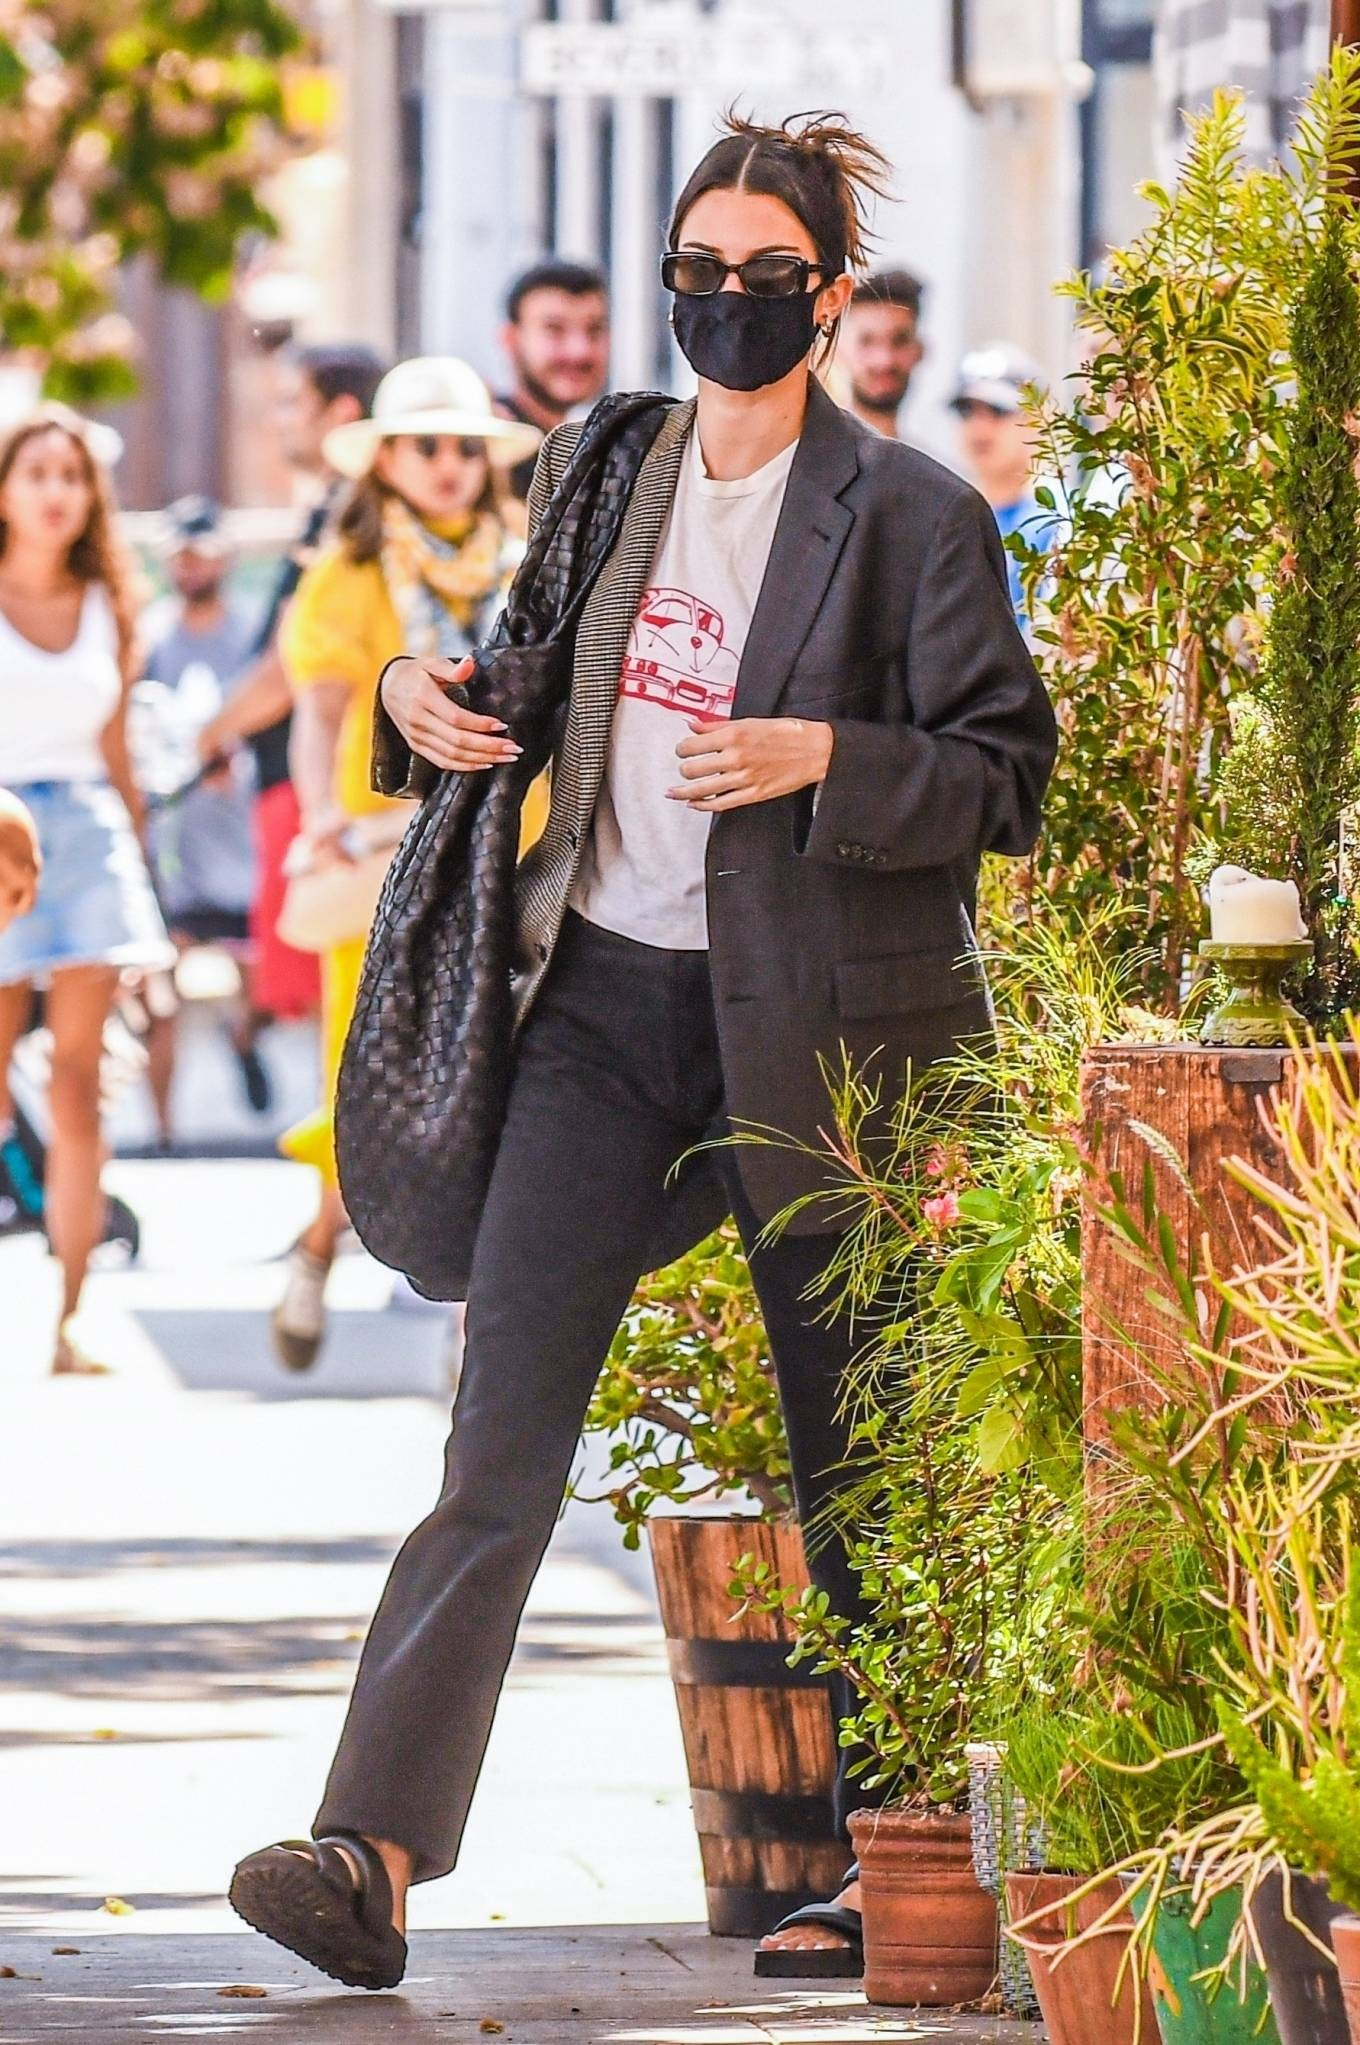 Kendall Jenner wearing round brown two-strap mules by baltini with flat heel